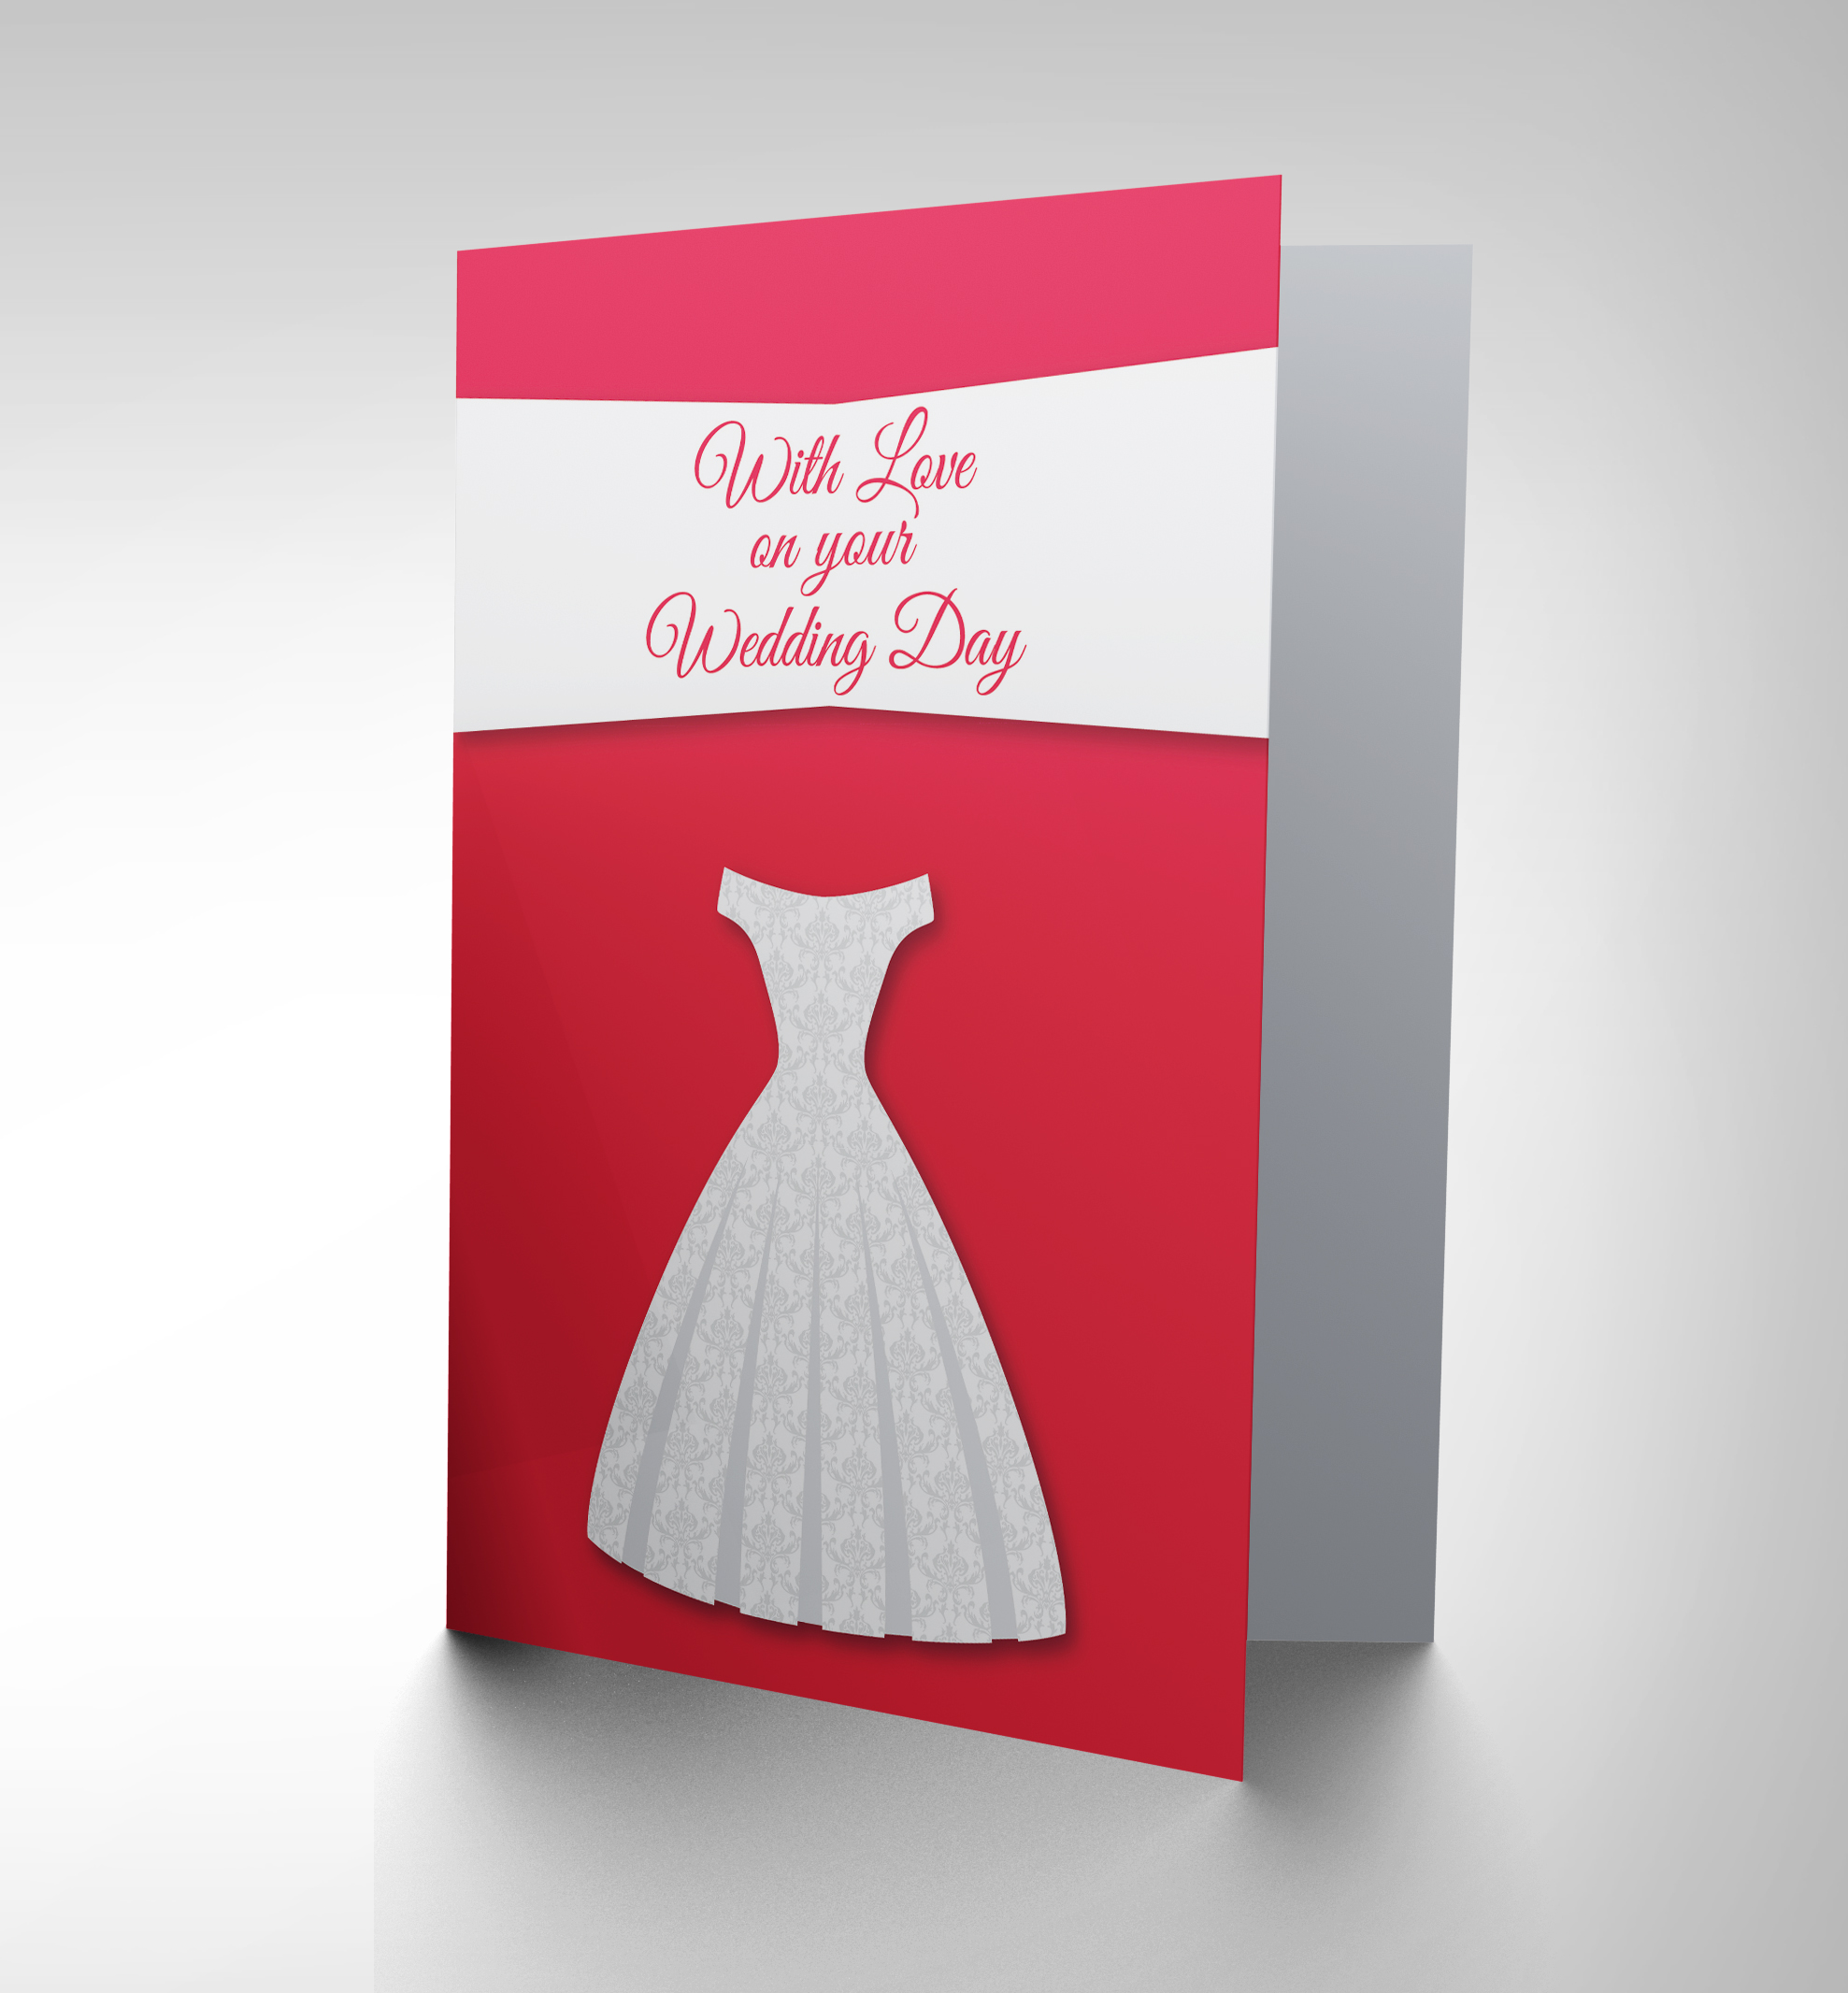 Wedding Gift Card Australia : WEDDING MARRIAGE LOVE DRESS NEW ART GREETINGS GIFT CARD CP1973 eBay